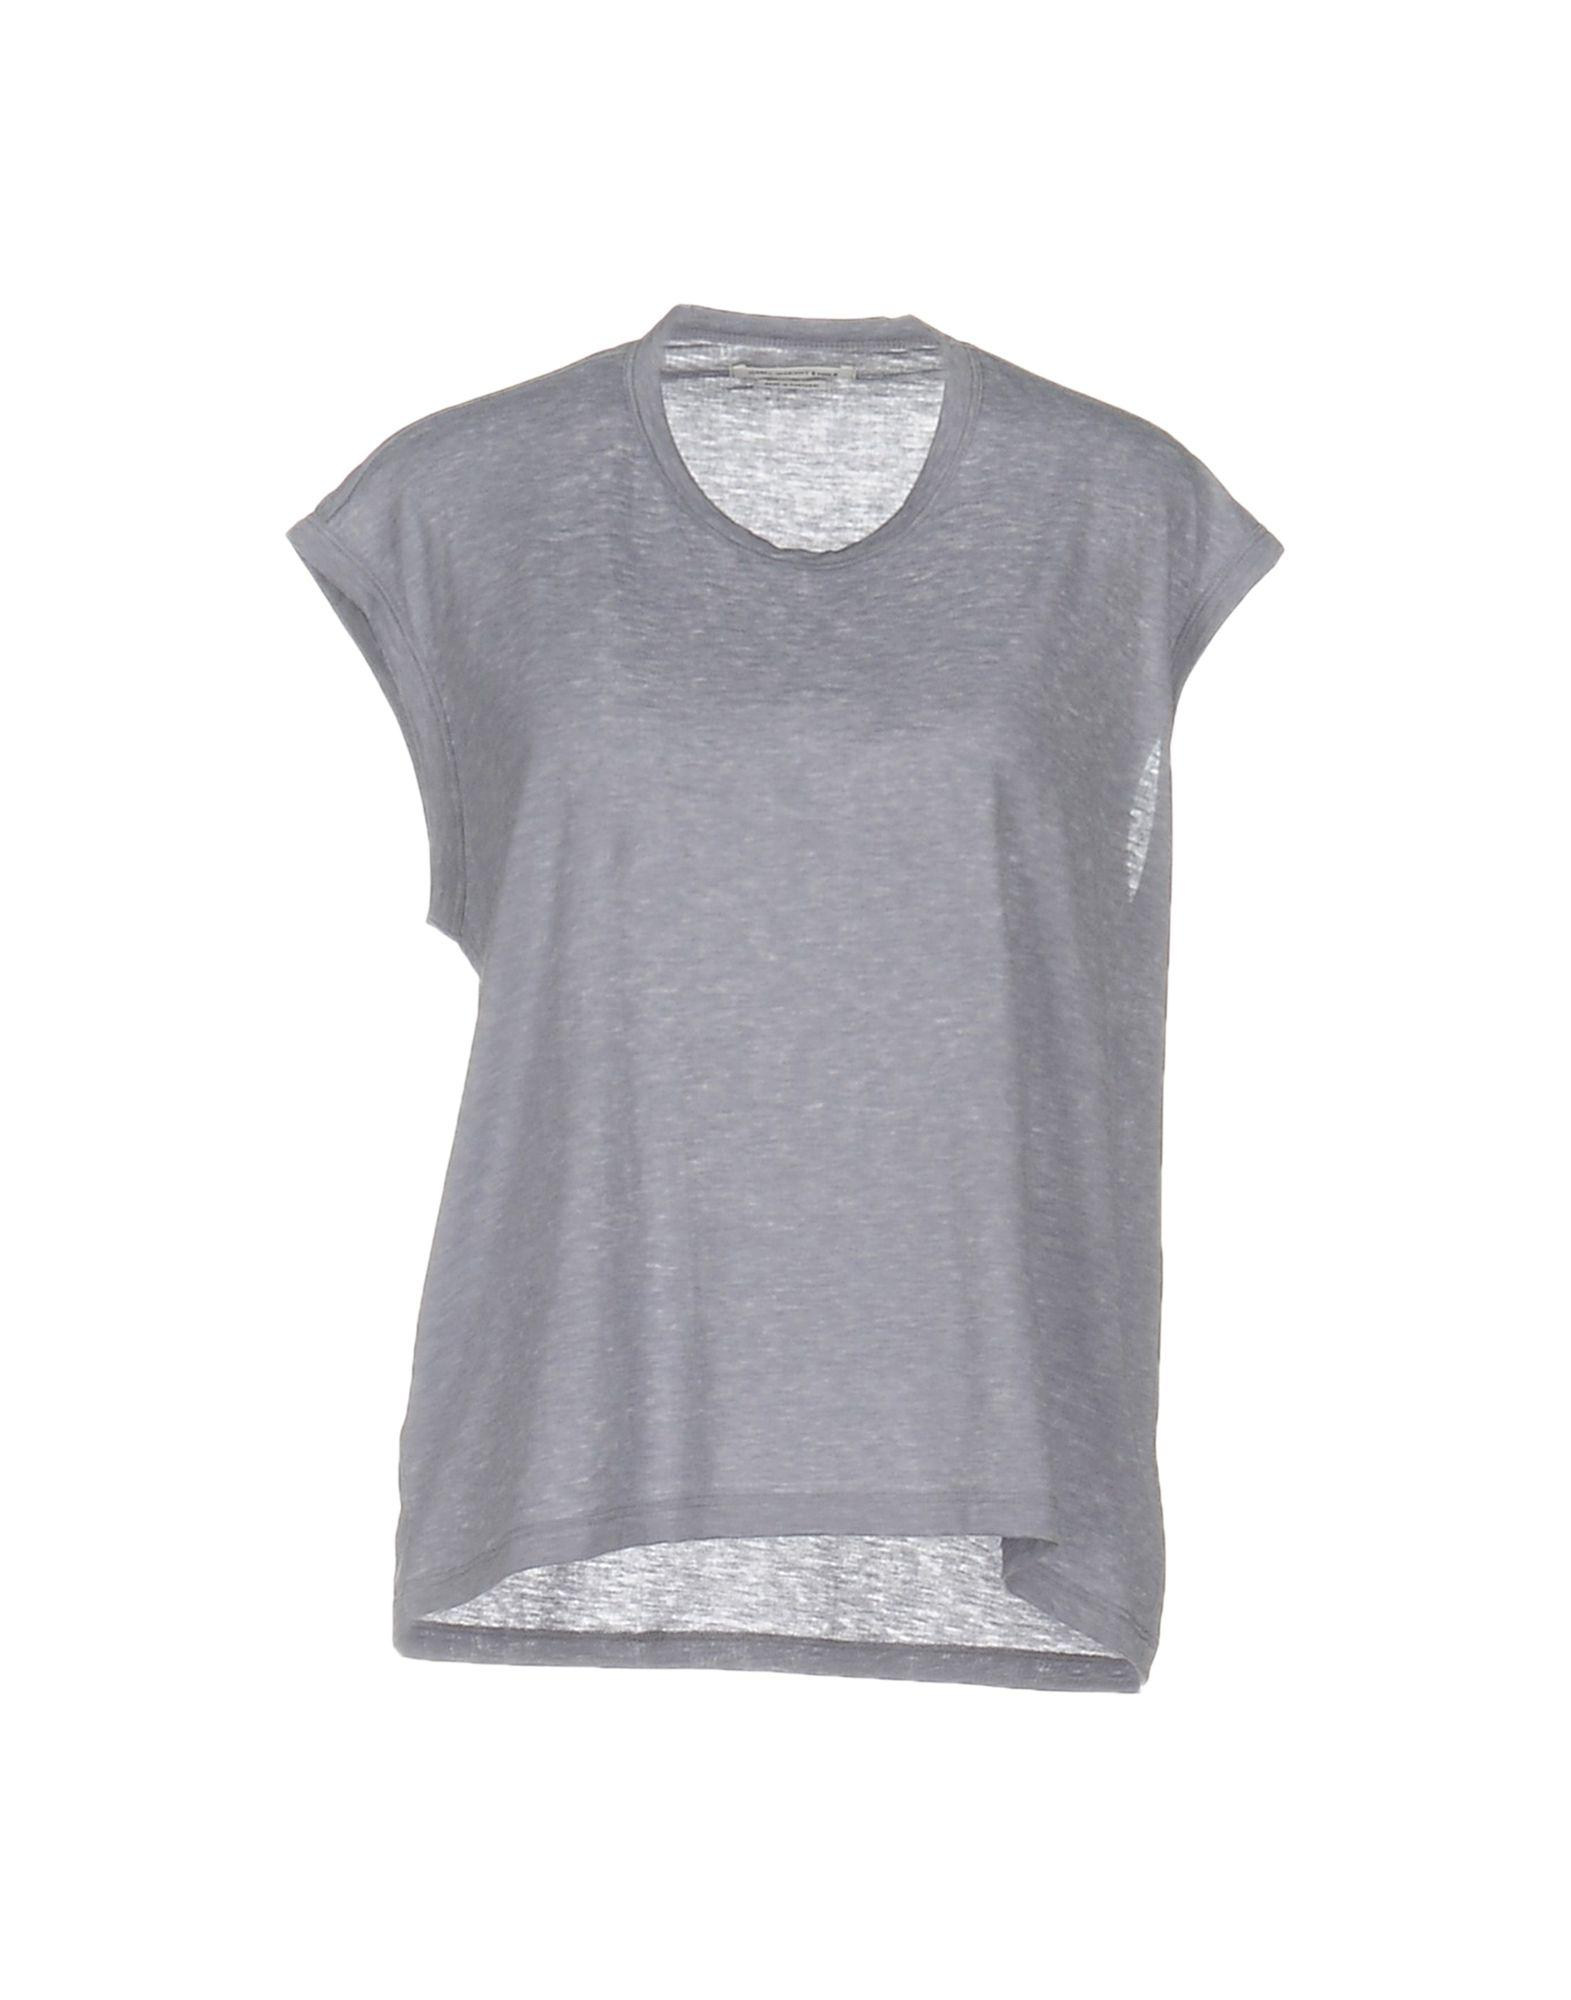 Toile isabel marant t shirt in purple lyst for Isabel marant t shirt sale